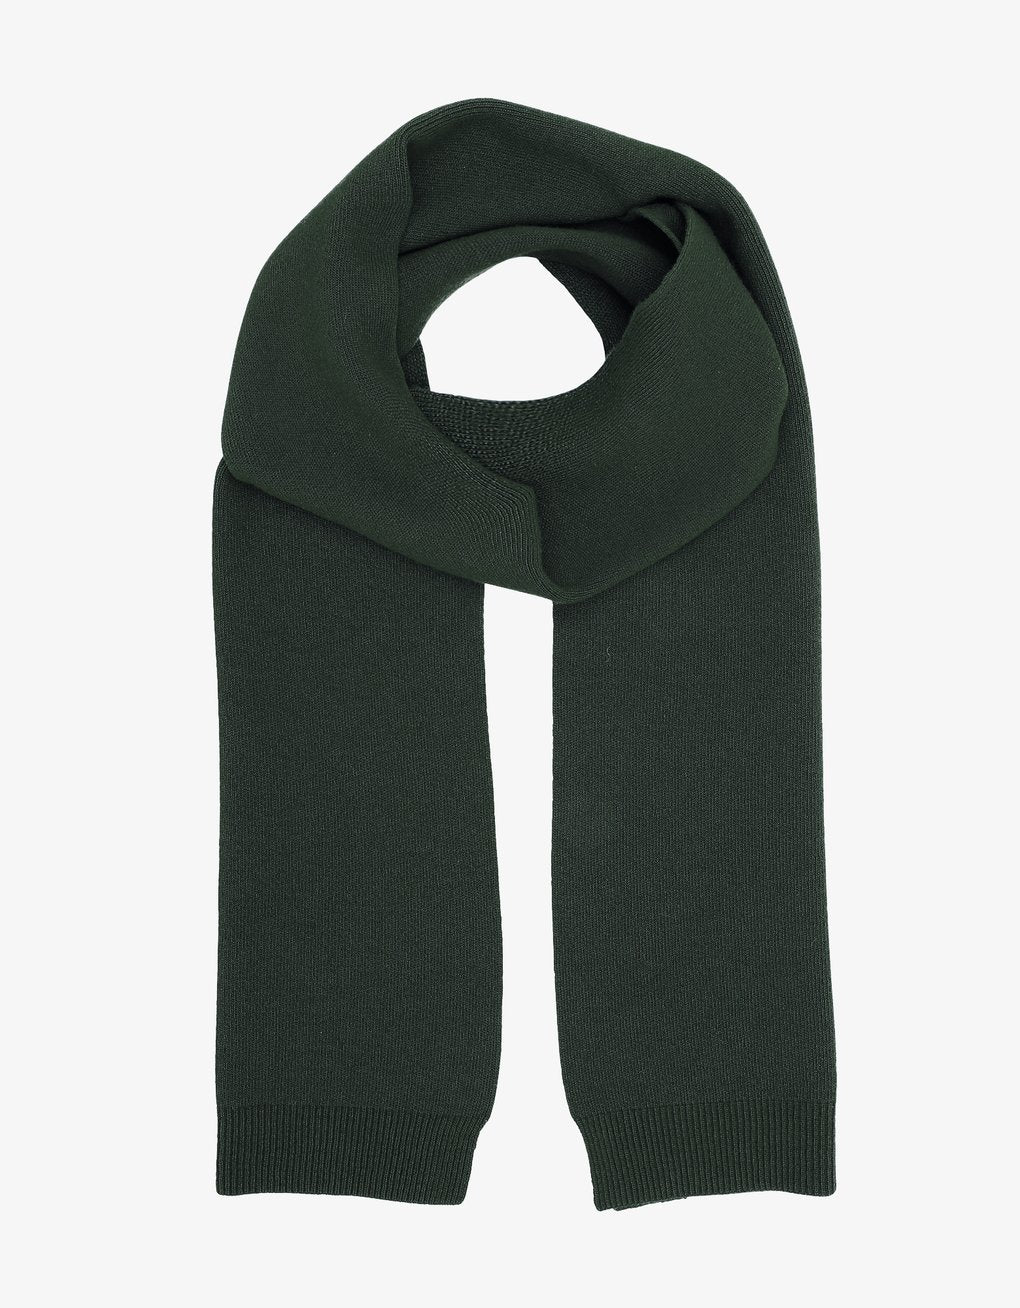 Merino Wool Scarf - Hunter Green